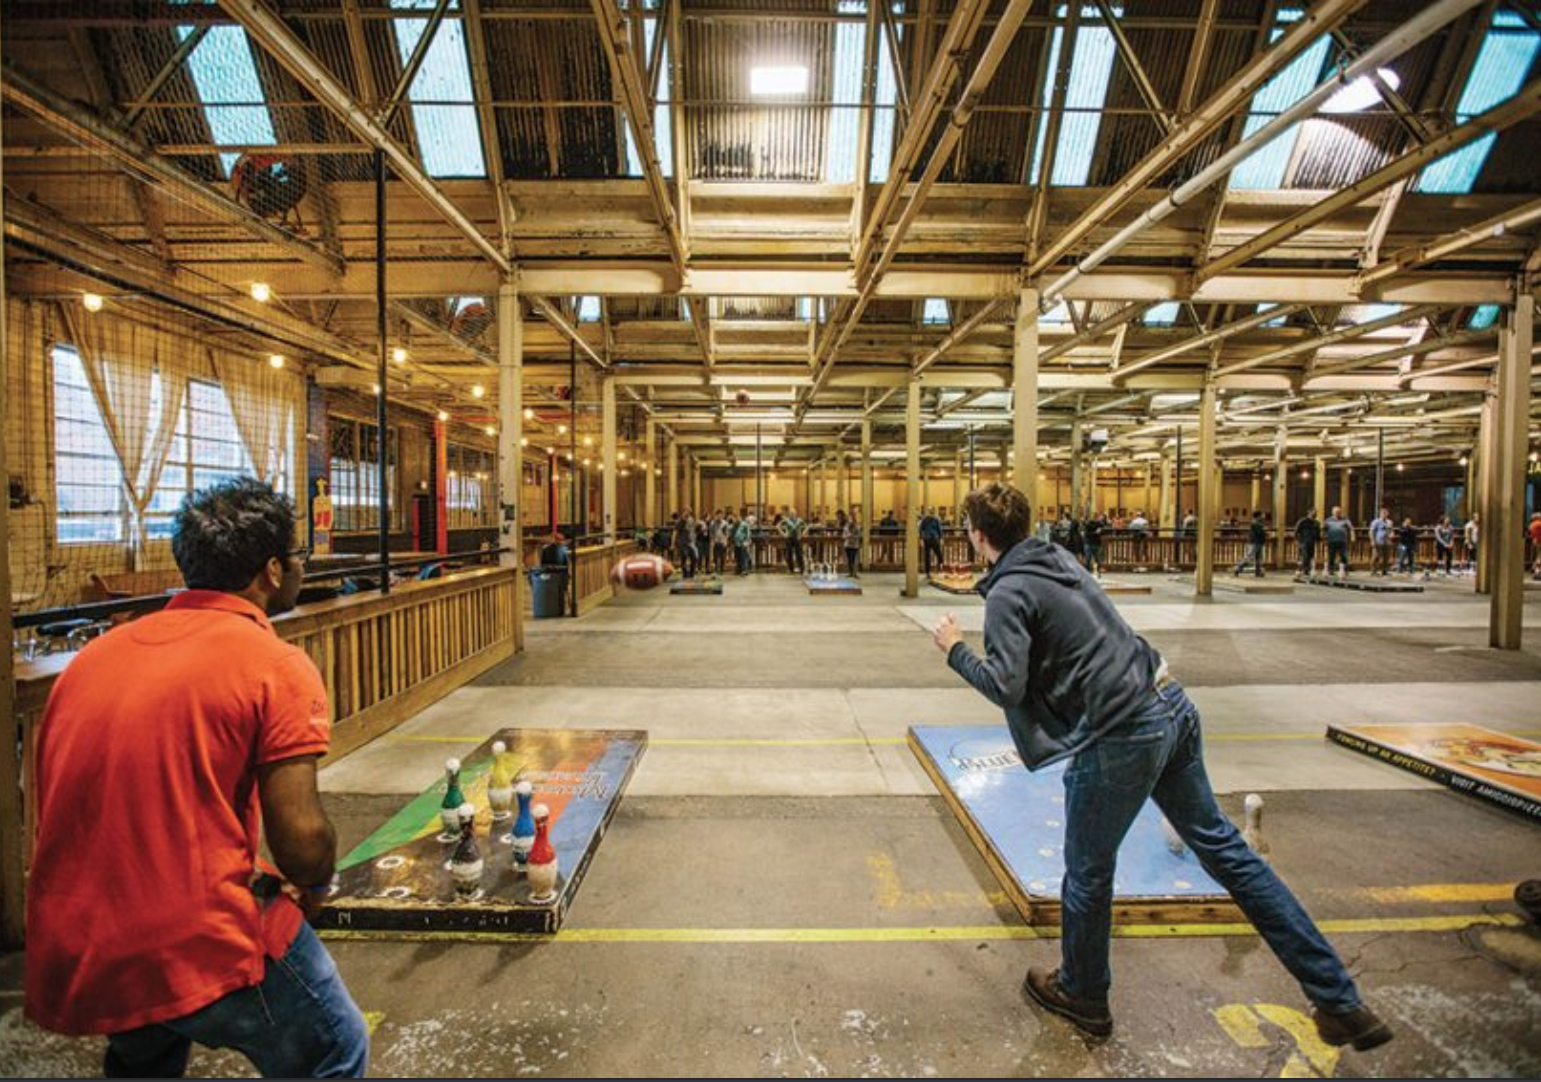 Image of people fowling at the Fowling Warehouse